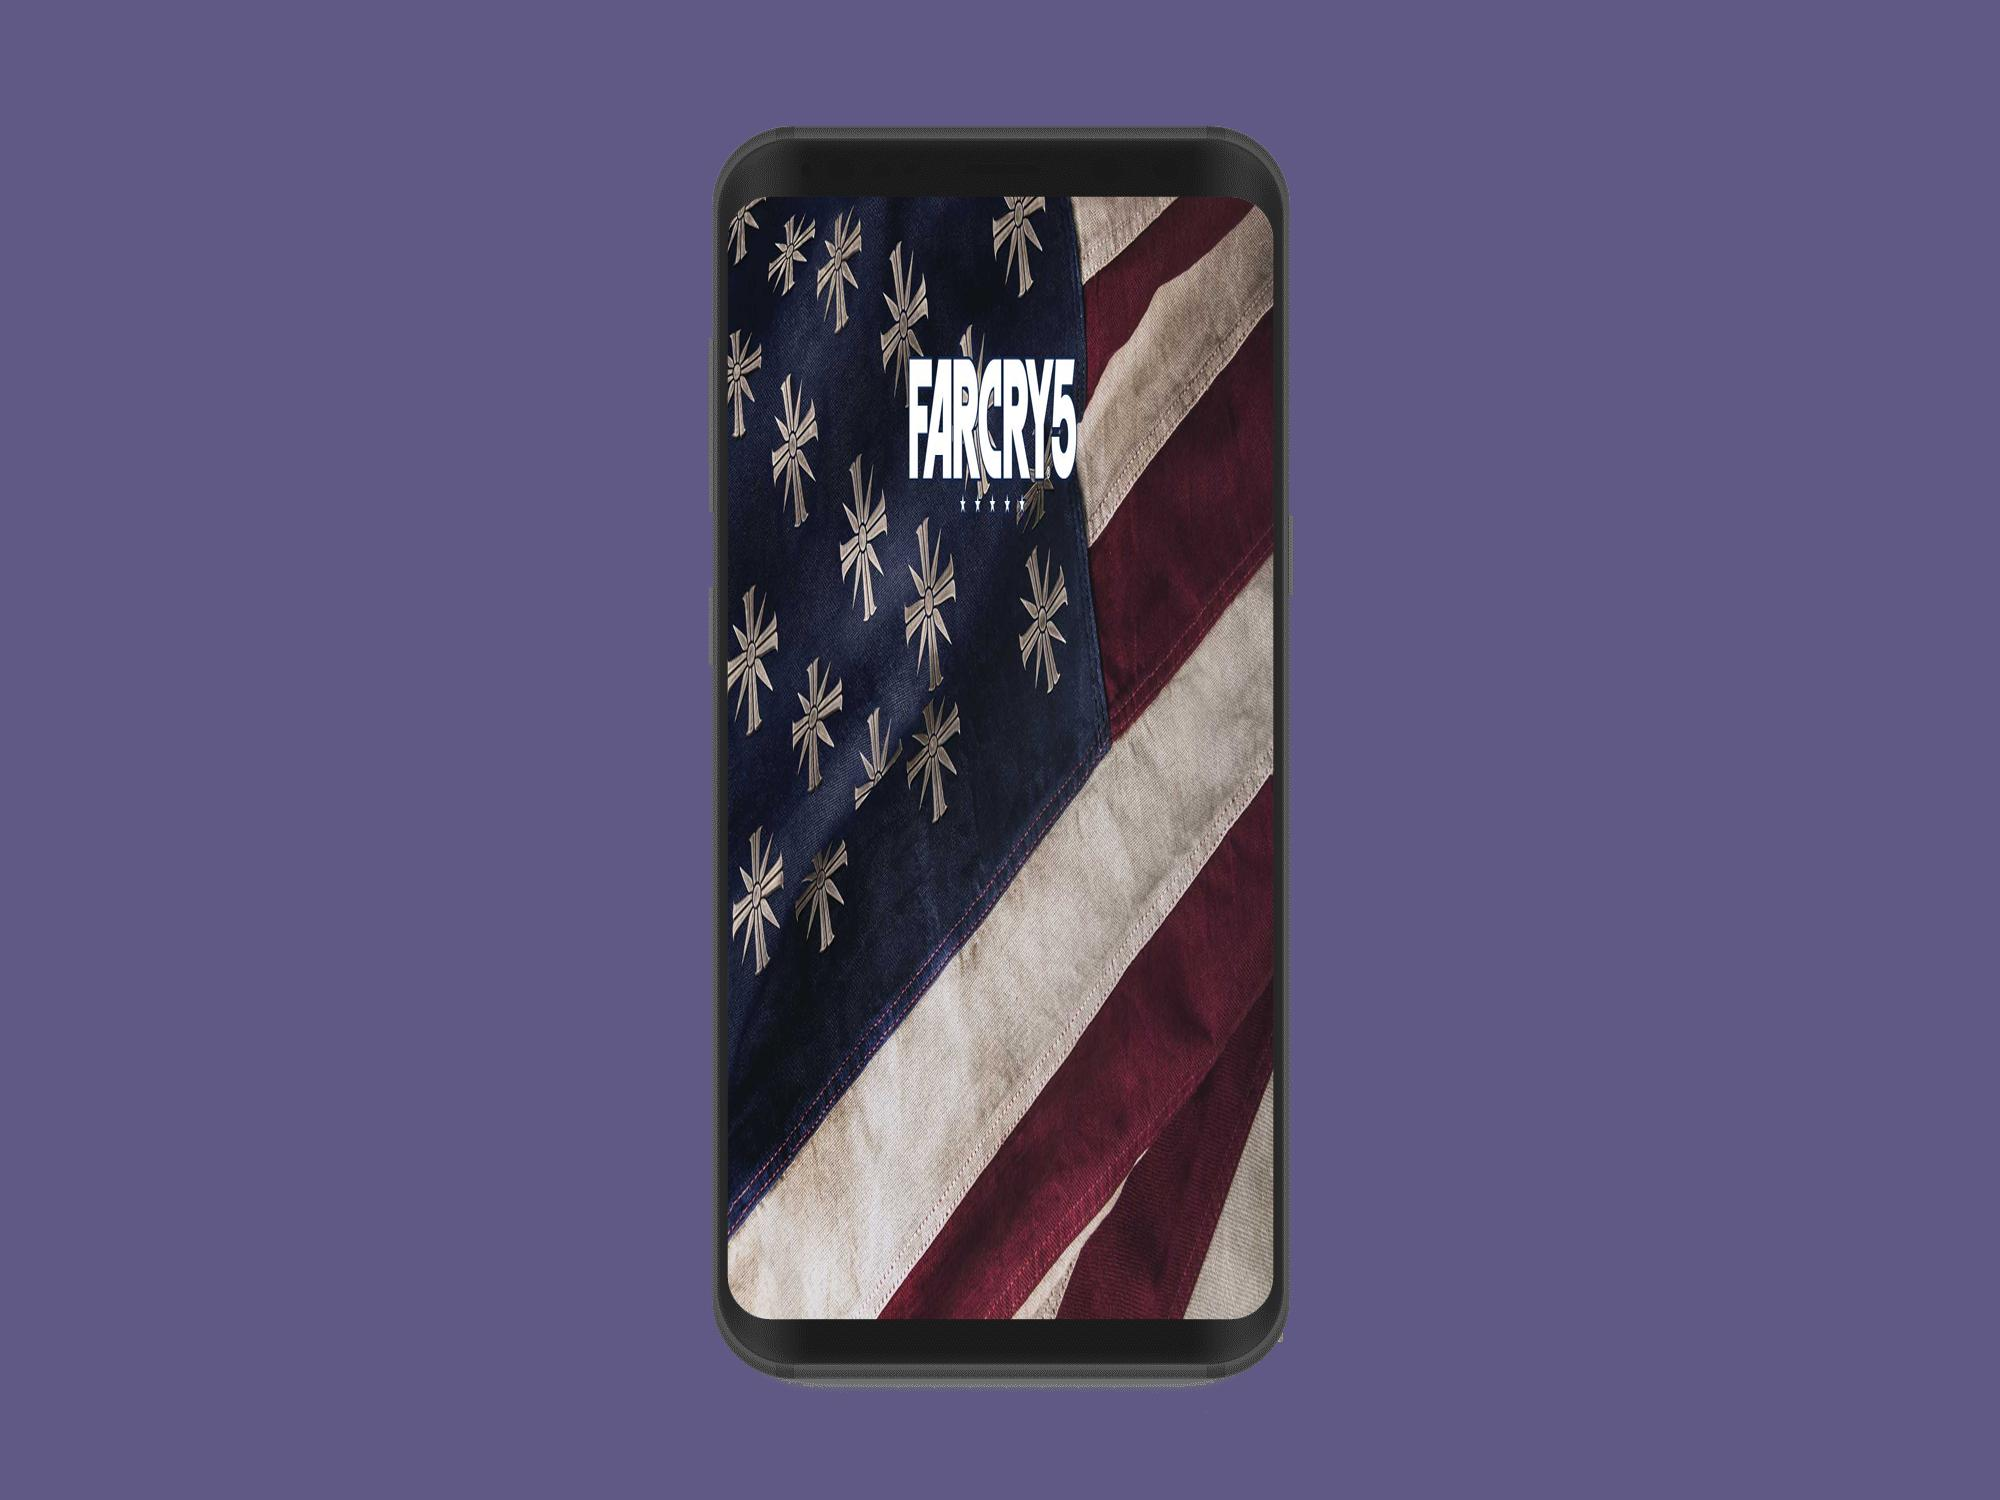 Wallpapers Hd For Far Cry 5 For Android Apk Download